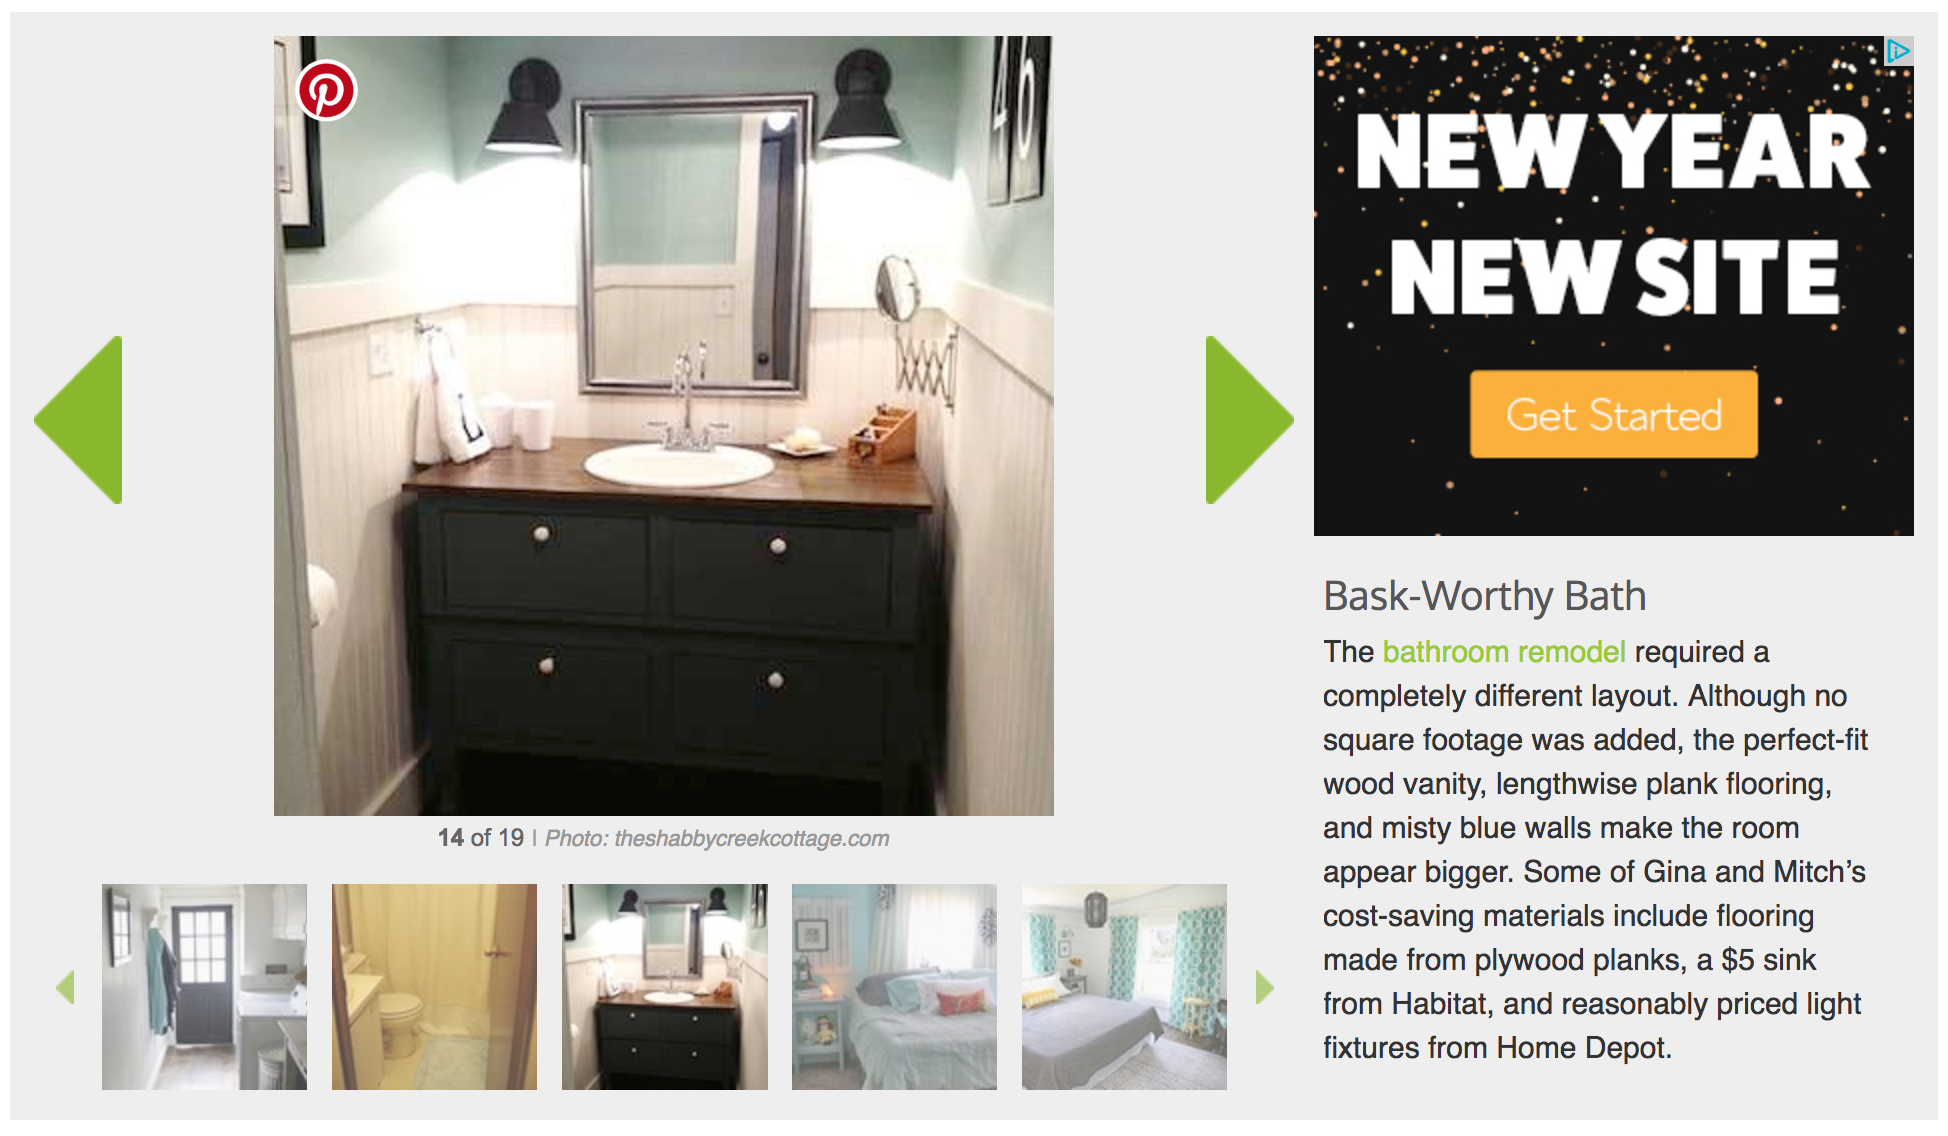 Our Best 2017 Double Wide Remodel Ideas, Tips and Tricks! Pallet Mobile Home Renovation on rev run's renovation, split level renovation, hotel renovation, rv renovation, class a motorhome renovation, motel renovation, fawcett stadium renovation, tiny house renovation, truck camper renovation, medieval castle renovation, rowhouse renovation, clifton's cafeteria renovation, christ cathedral renovation, ranch renovation, at&t center renovation, genevieve's renovation, craftsman house renovation, daniel-meyer coliseum renovation, class c motorhome renovation,